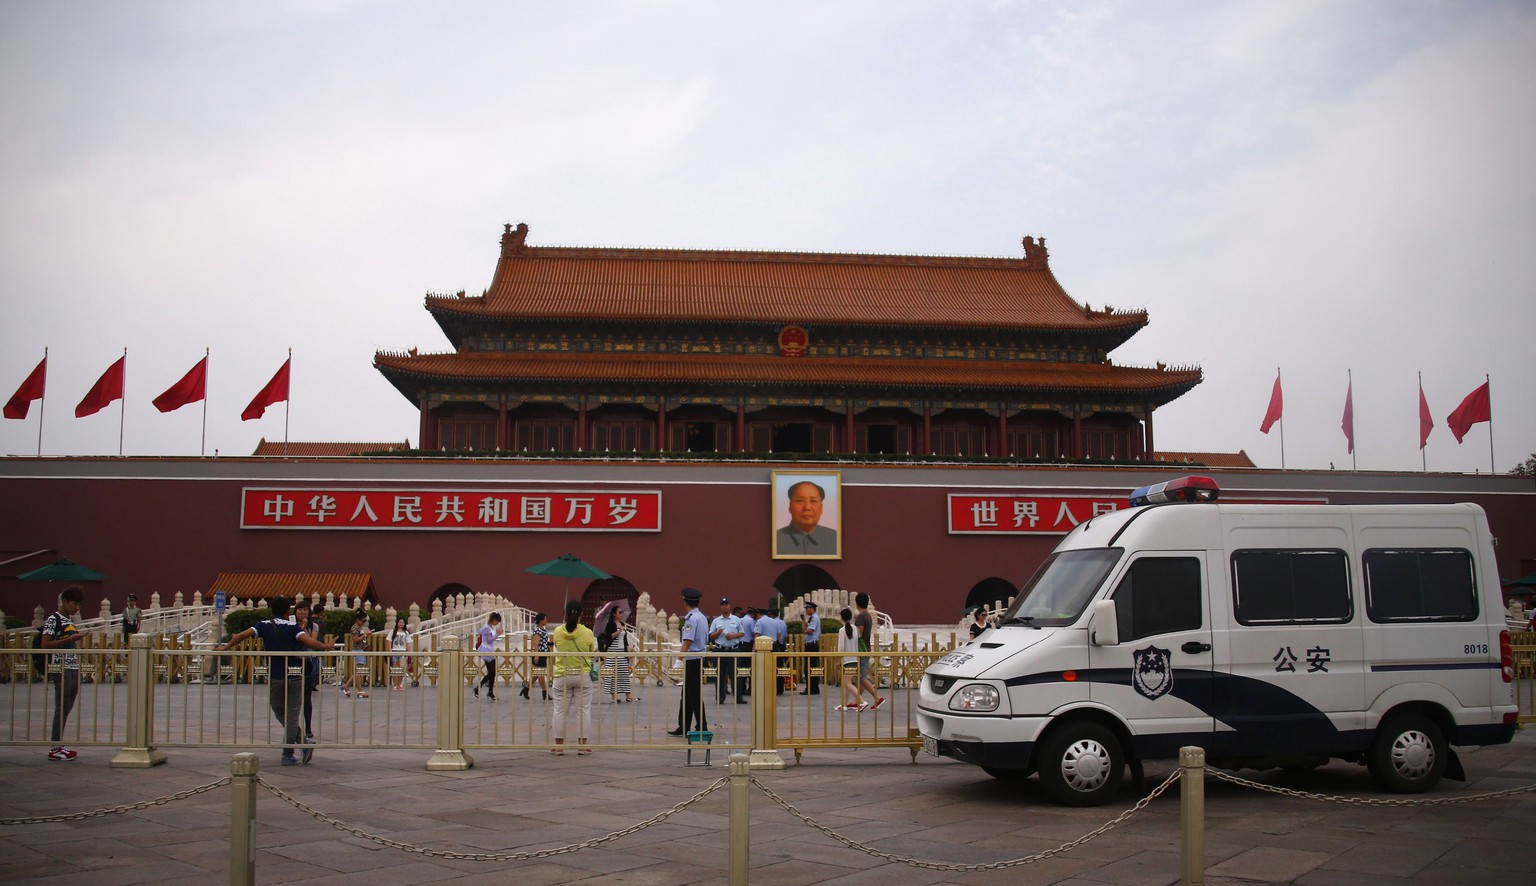 A police car guards in front of a giant portrait of China's late Chairman Mao Zedong at Tiananmen Square in Beijing June 4, 2014. China deployed its vast security apparatus on Wednesday to snuff out commemoration of the suppression of pro-democracy protests around Tiananmen Square 25 years ago, flooding the streets with police as censors scrubbed the Internet clean of any mention of the crackdown. REUTERS/Petar Kujundzic (CHINA - Tags: MILITARY ANNIVERSARY POLITICS SOCIETY)